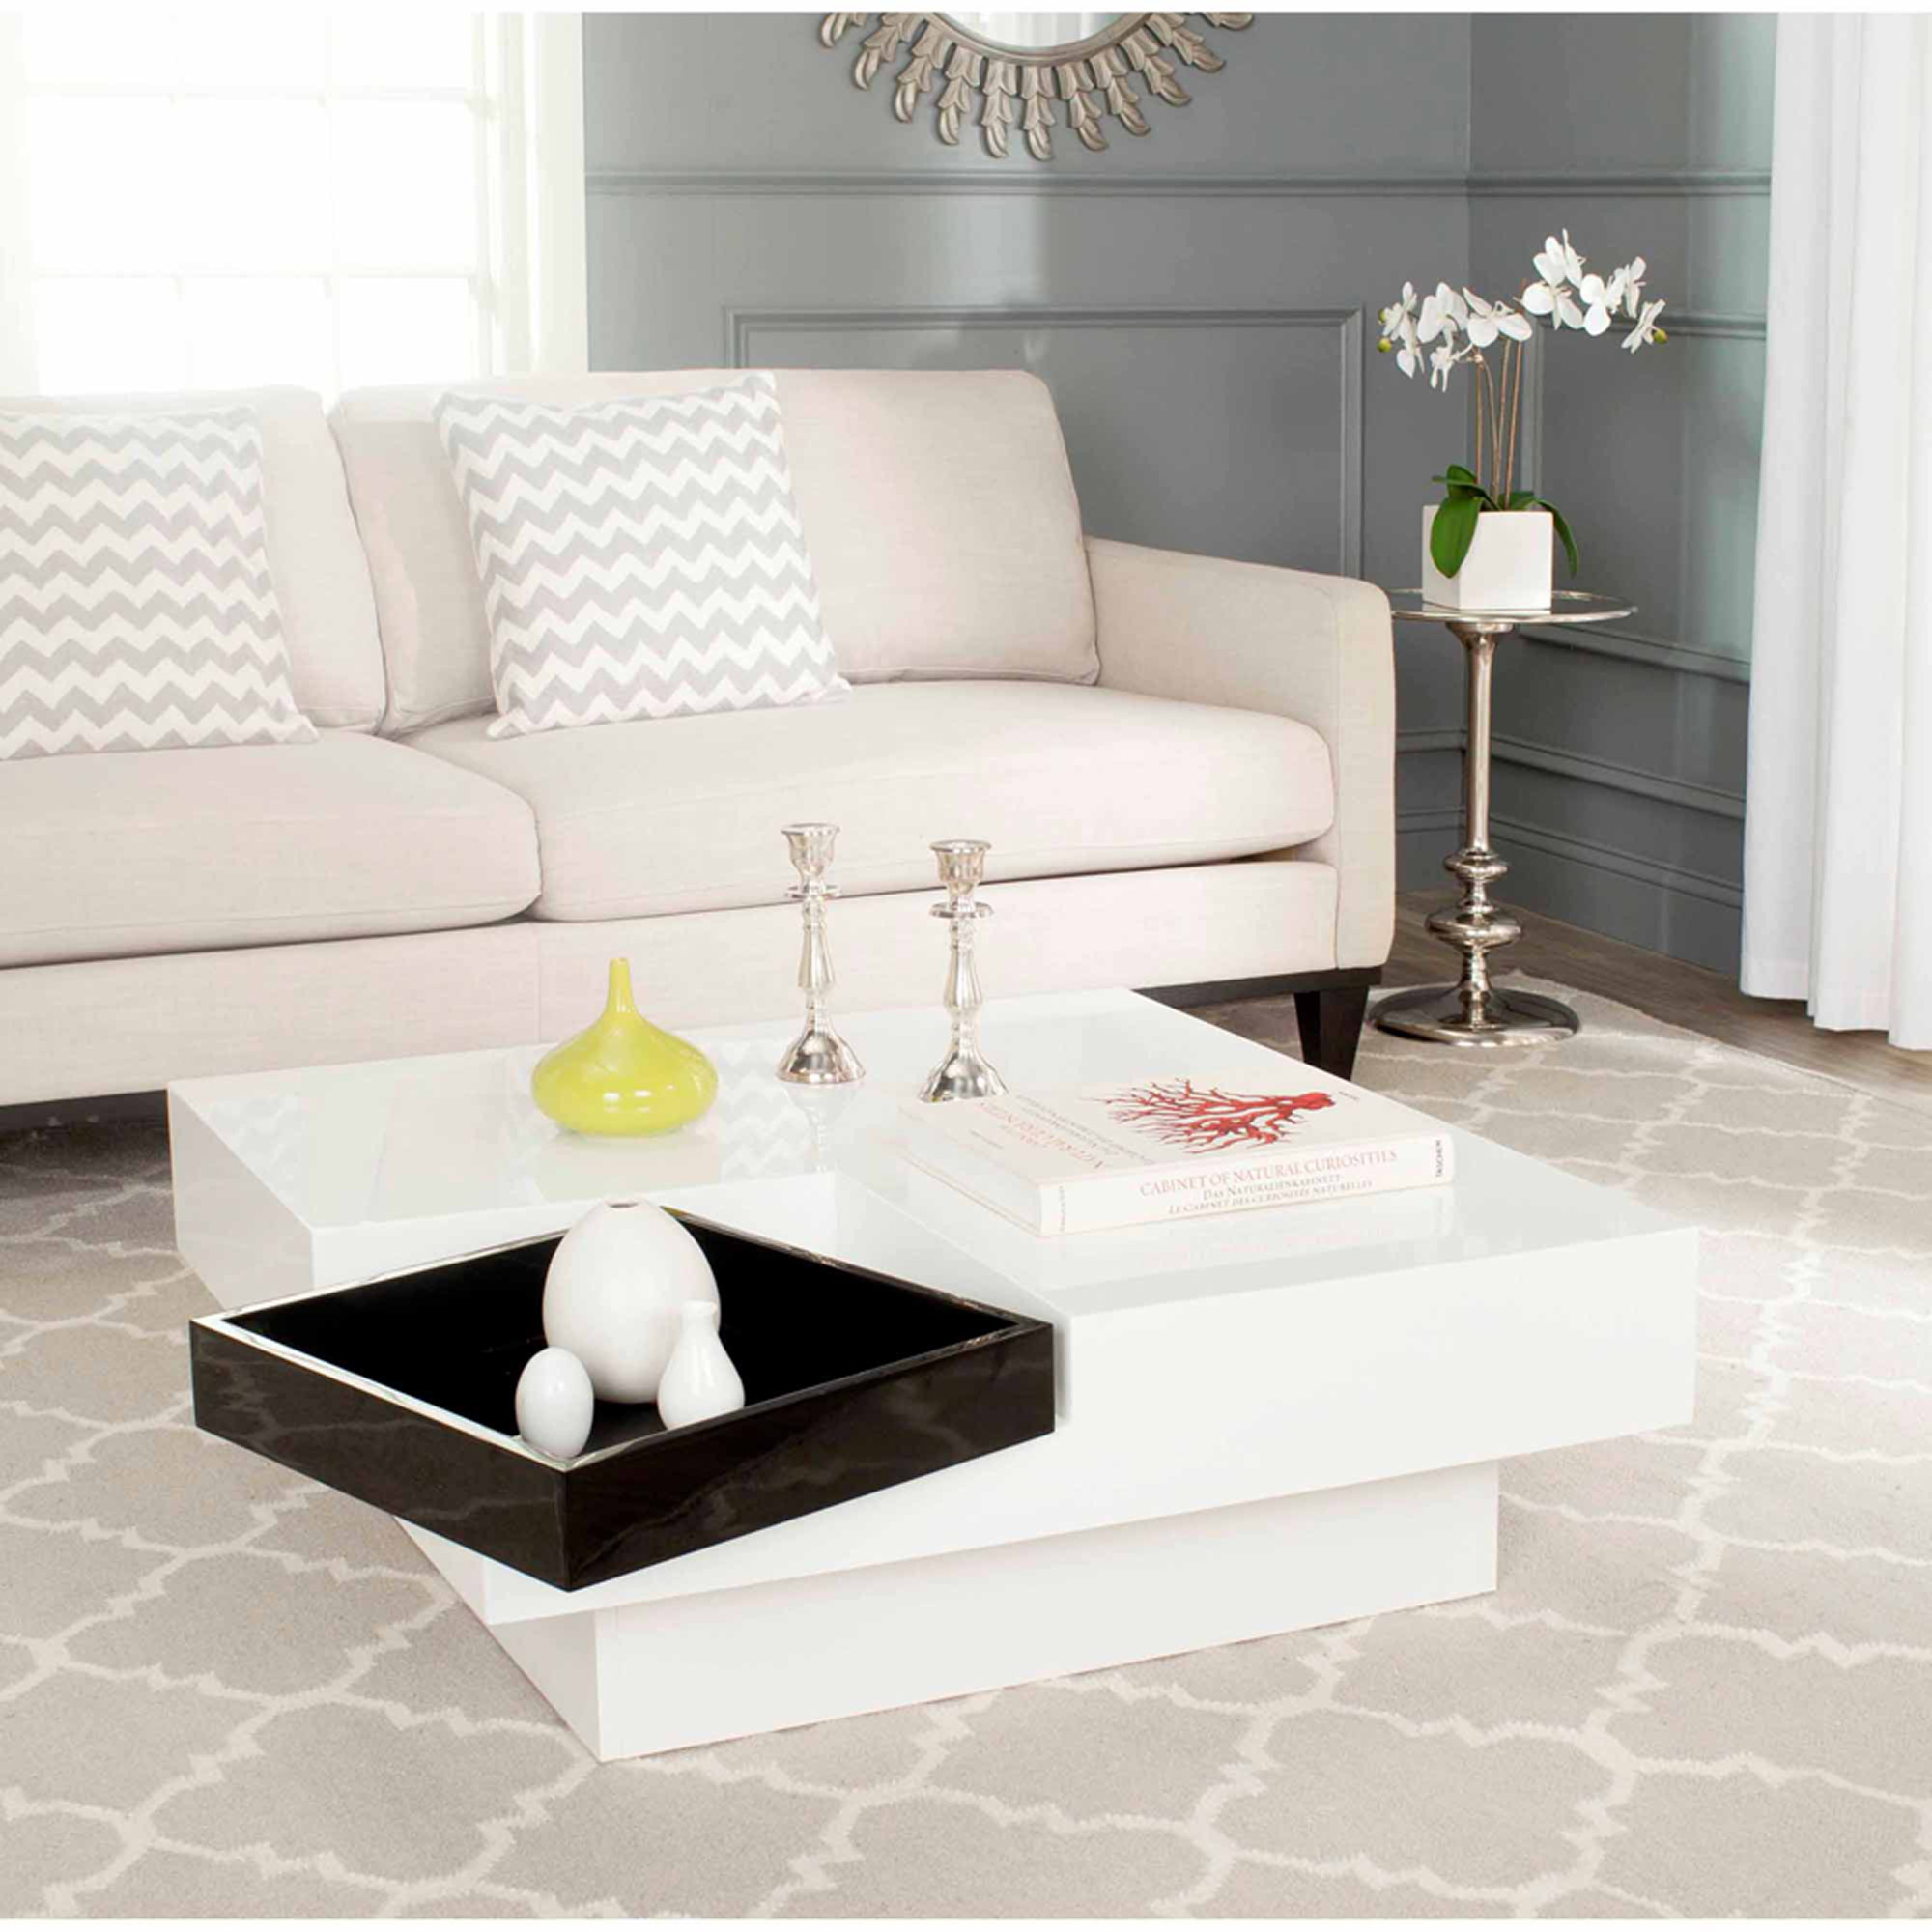 Safavieh Wesley Coffee Table, White and Black - Walmart.com